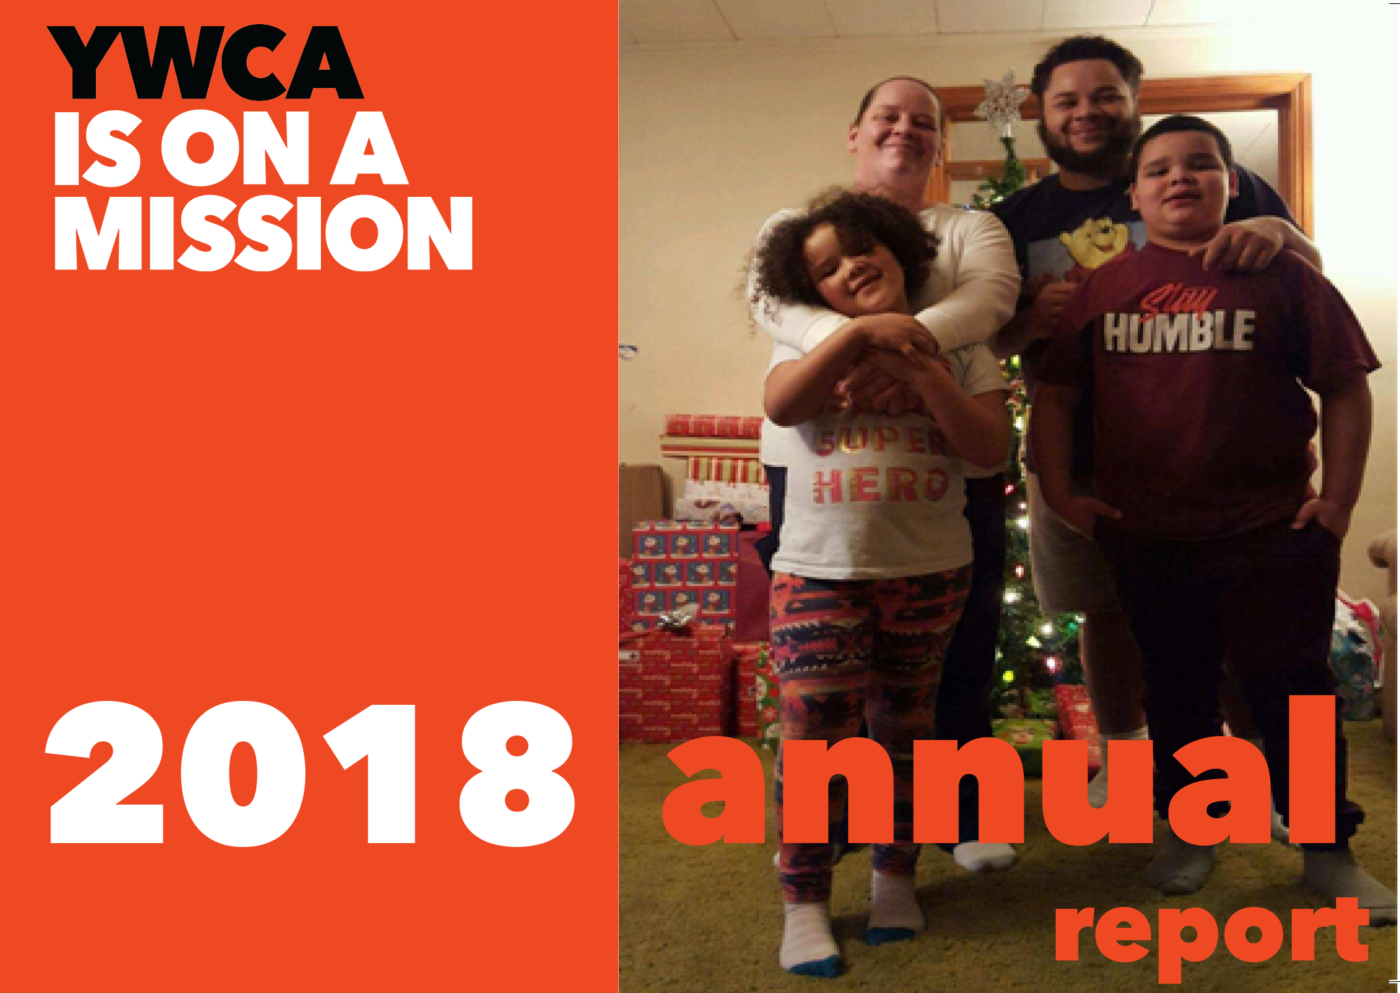 Front Cover of the YWCA Canton 2018 Annual Report